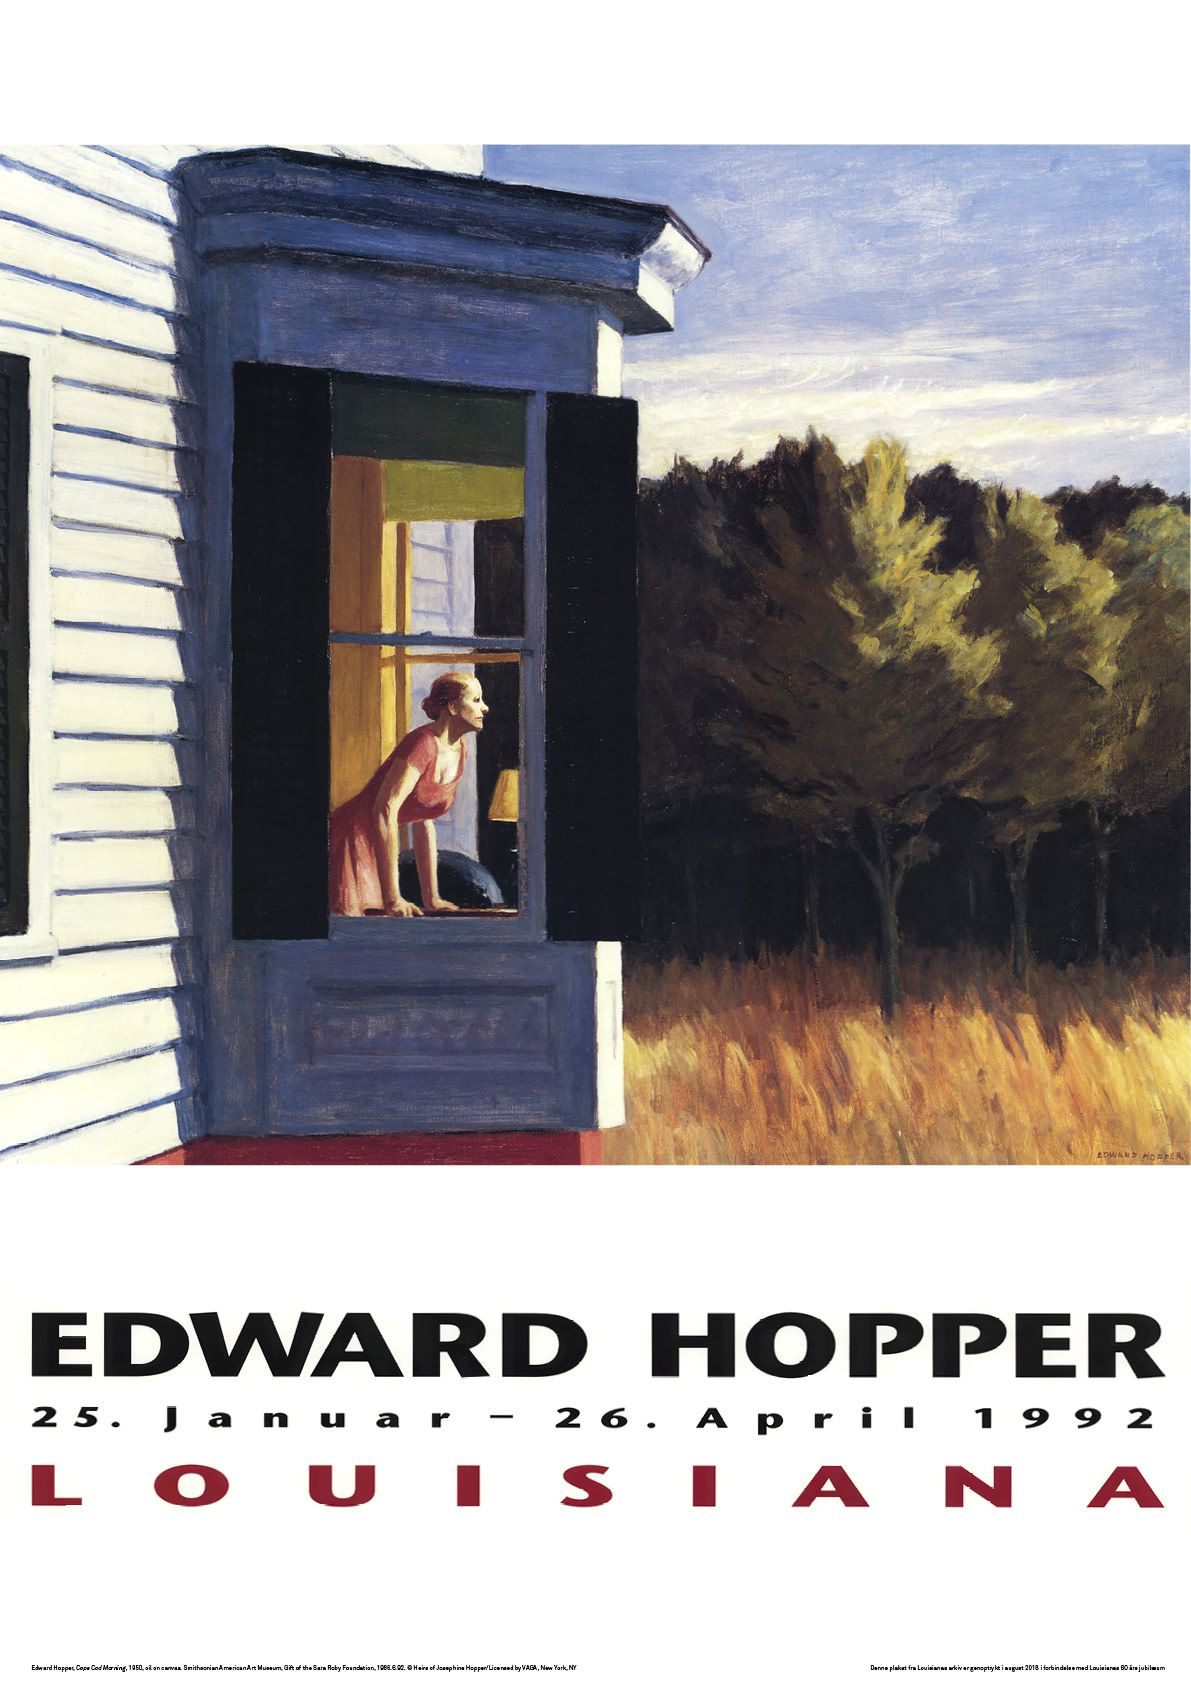 Celebrate 60 Years Of Louisiana Museum With These Vintage Posters Louisiana Museum Edward Hopper Iconic Poster